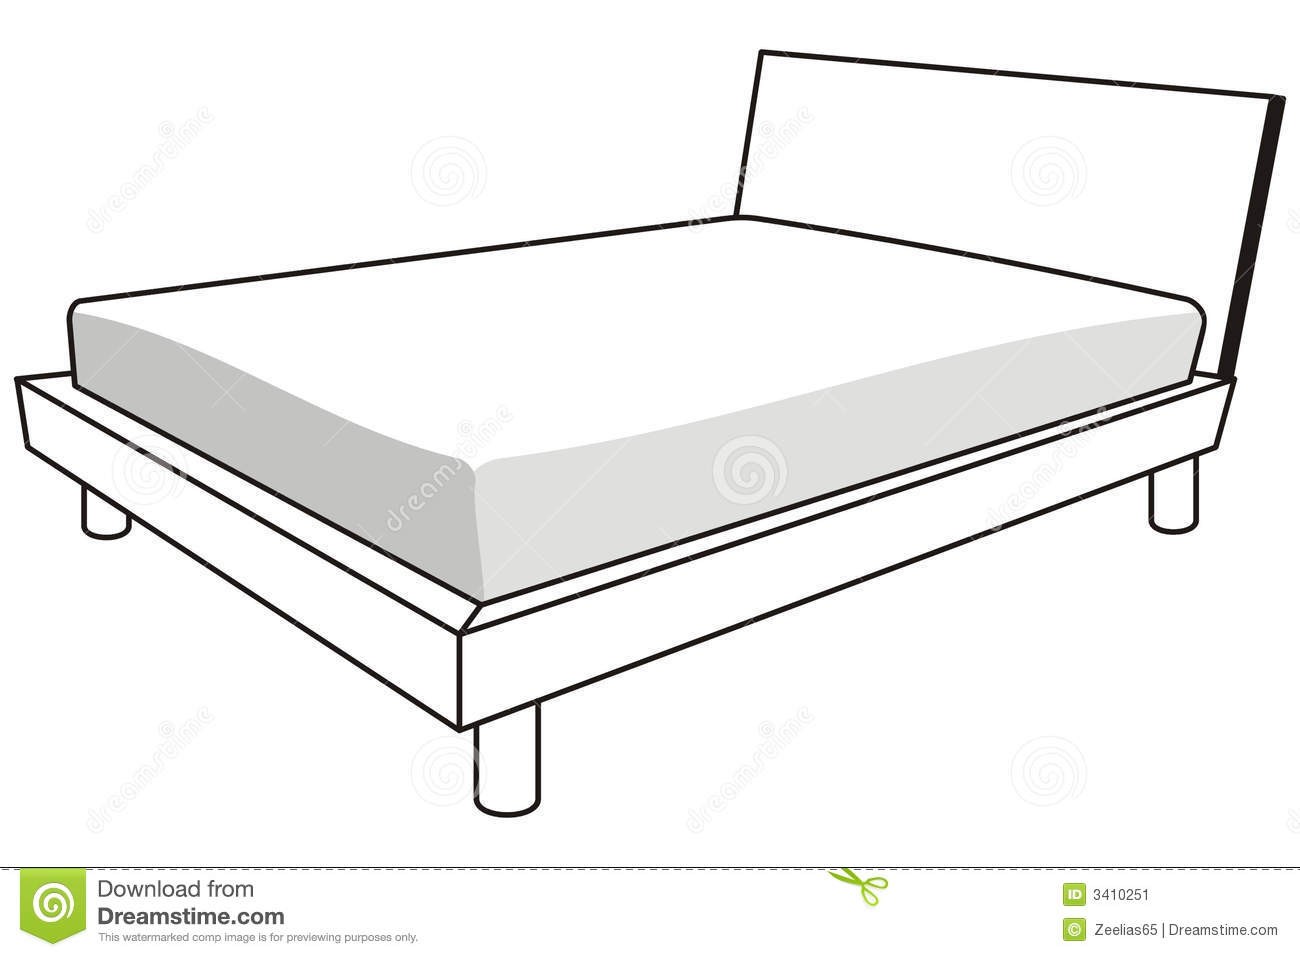 Under The Bed Clipart Black And White Wh-Under The Bed Clipart Black And White White Bed Clipart Black-17